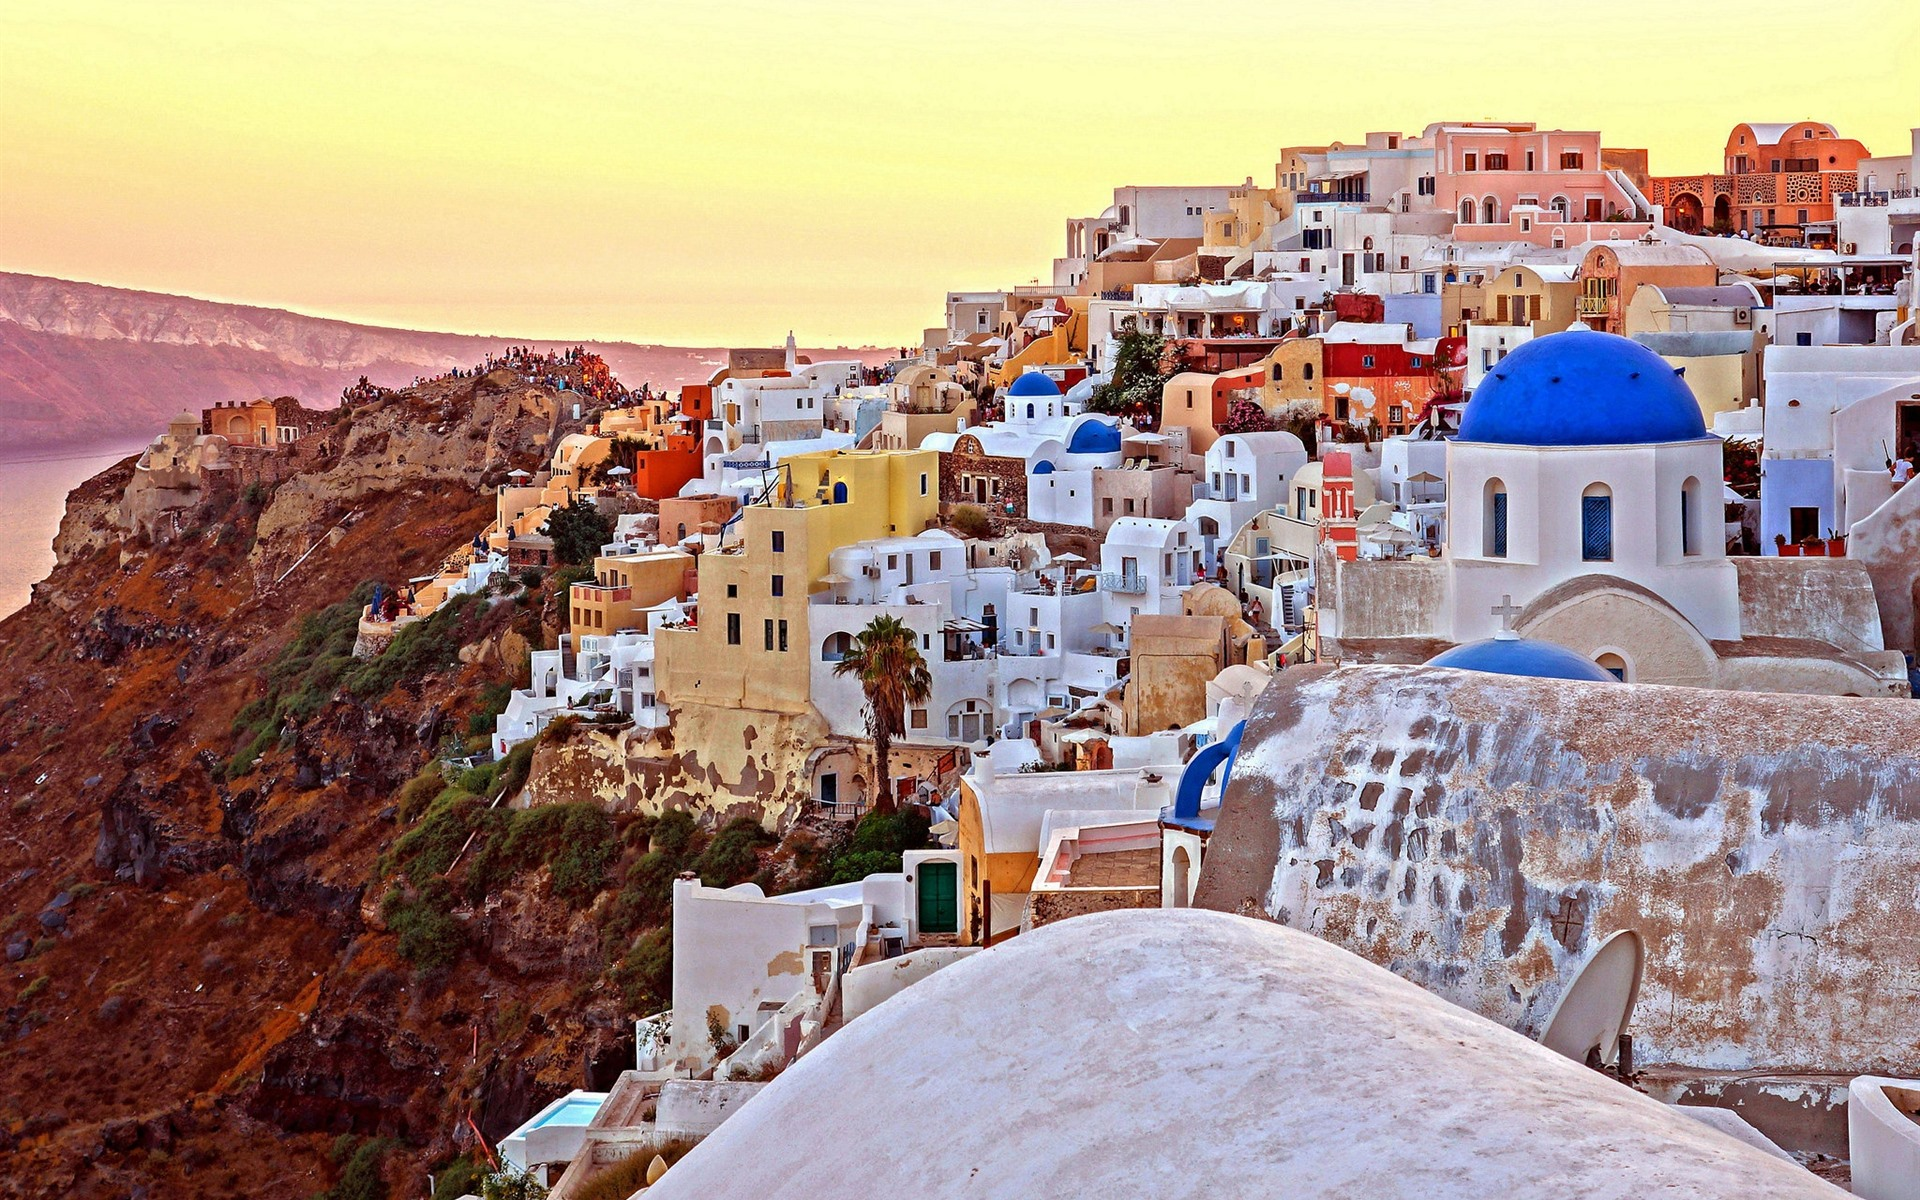 Wallpaper Santorini Greece city houses 1920x1200 HD Picture Image 1920x1200